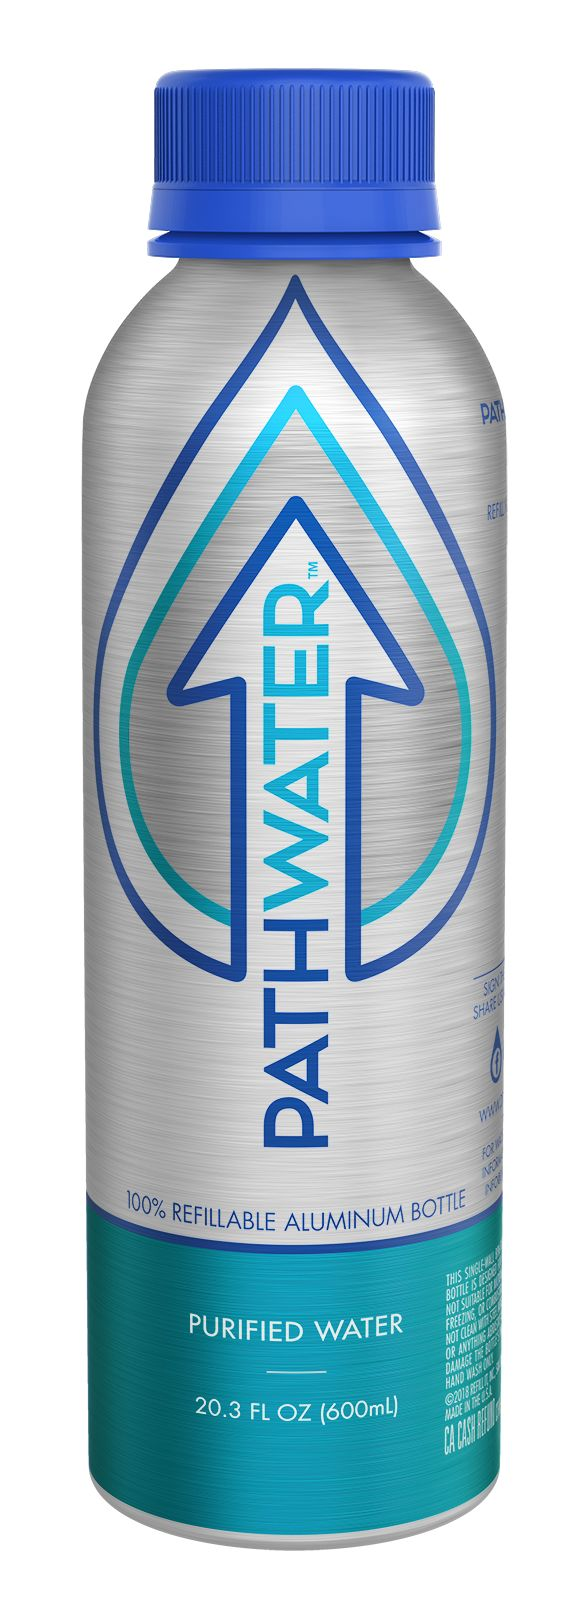 Refillable Purified Water Bottles